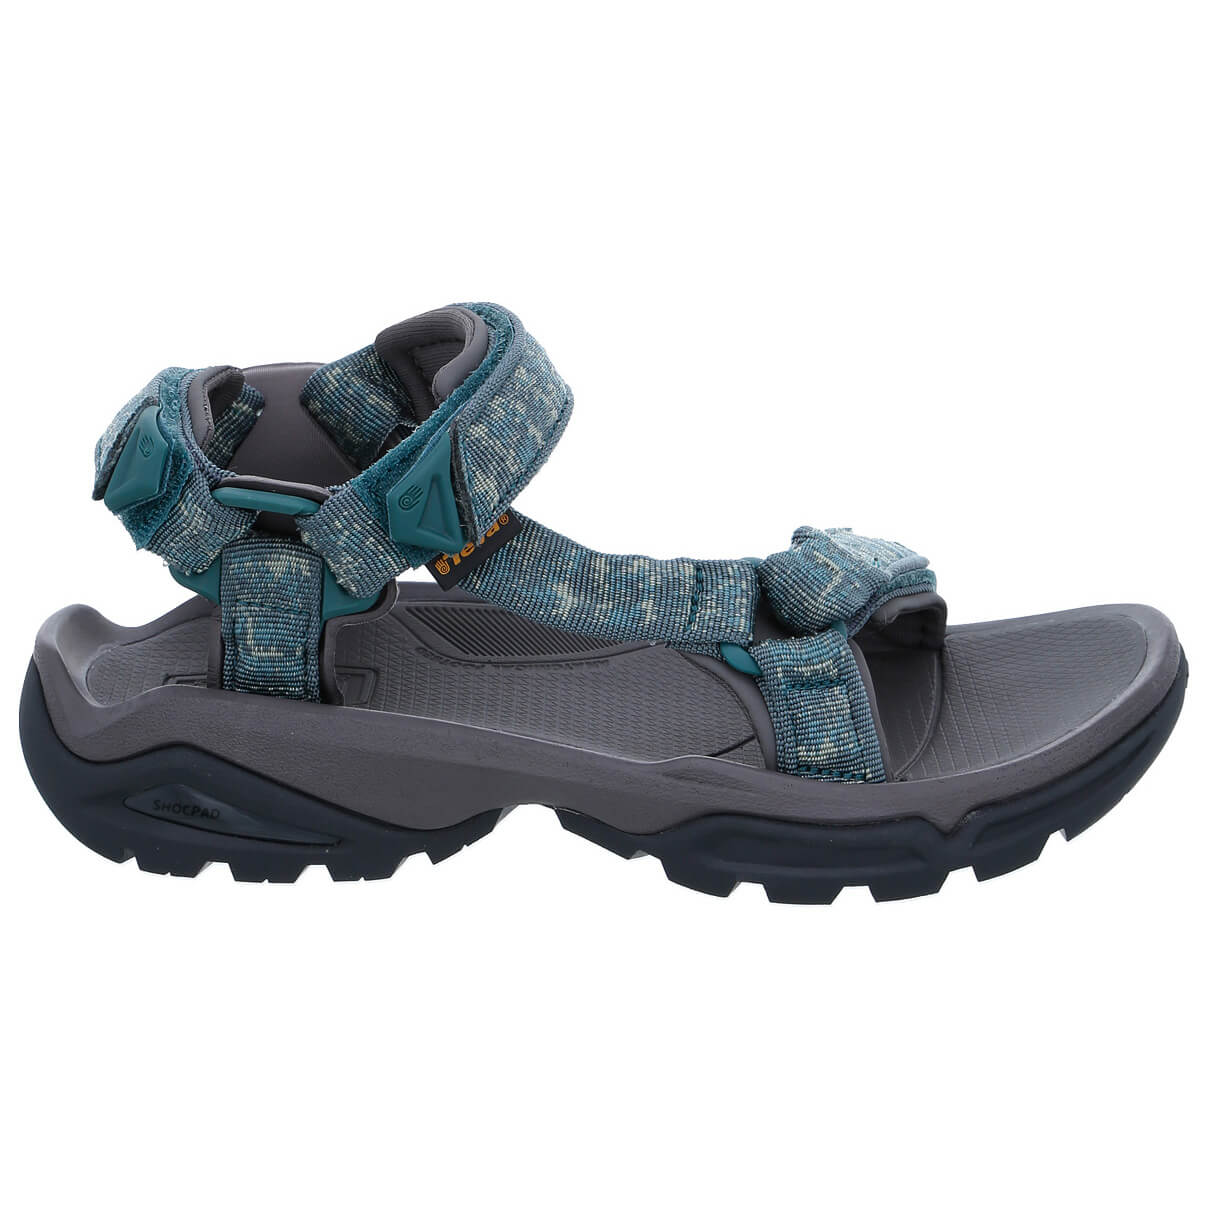 Alpinetrek Teva uk Terra Women'sBuy 4 Online co Fi Sandals 1uc3TFKJl